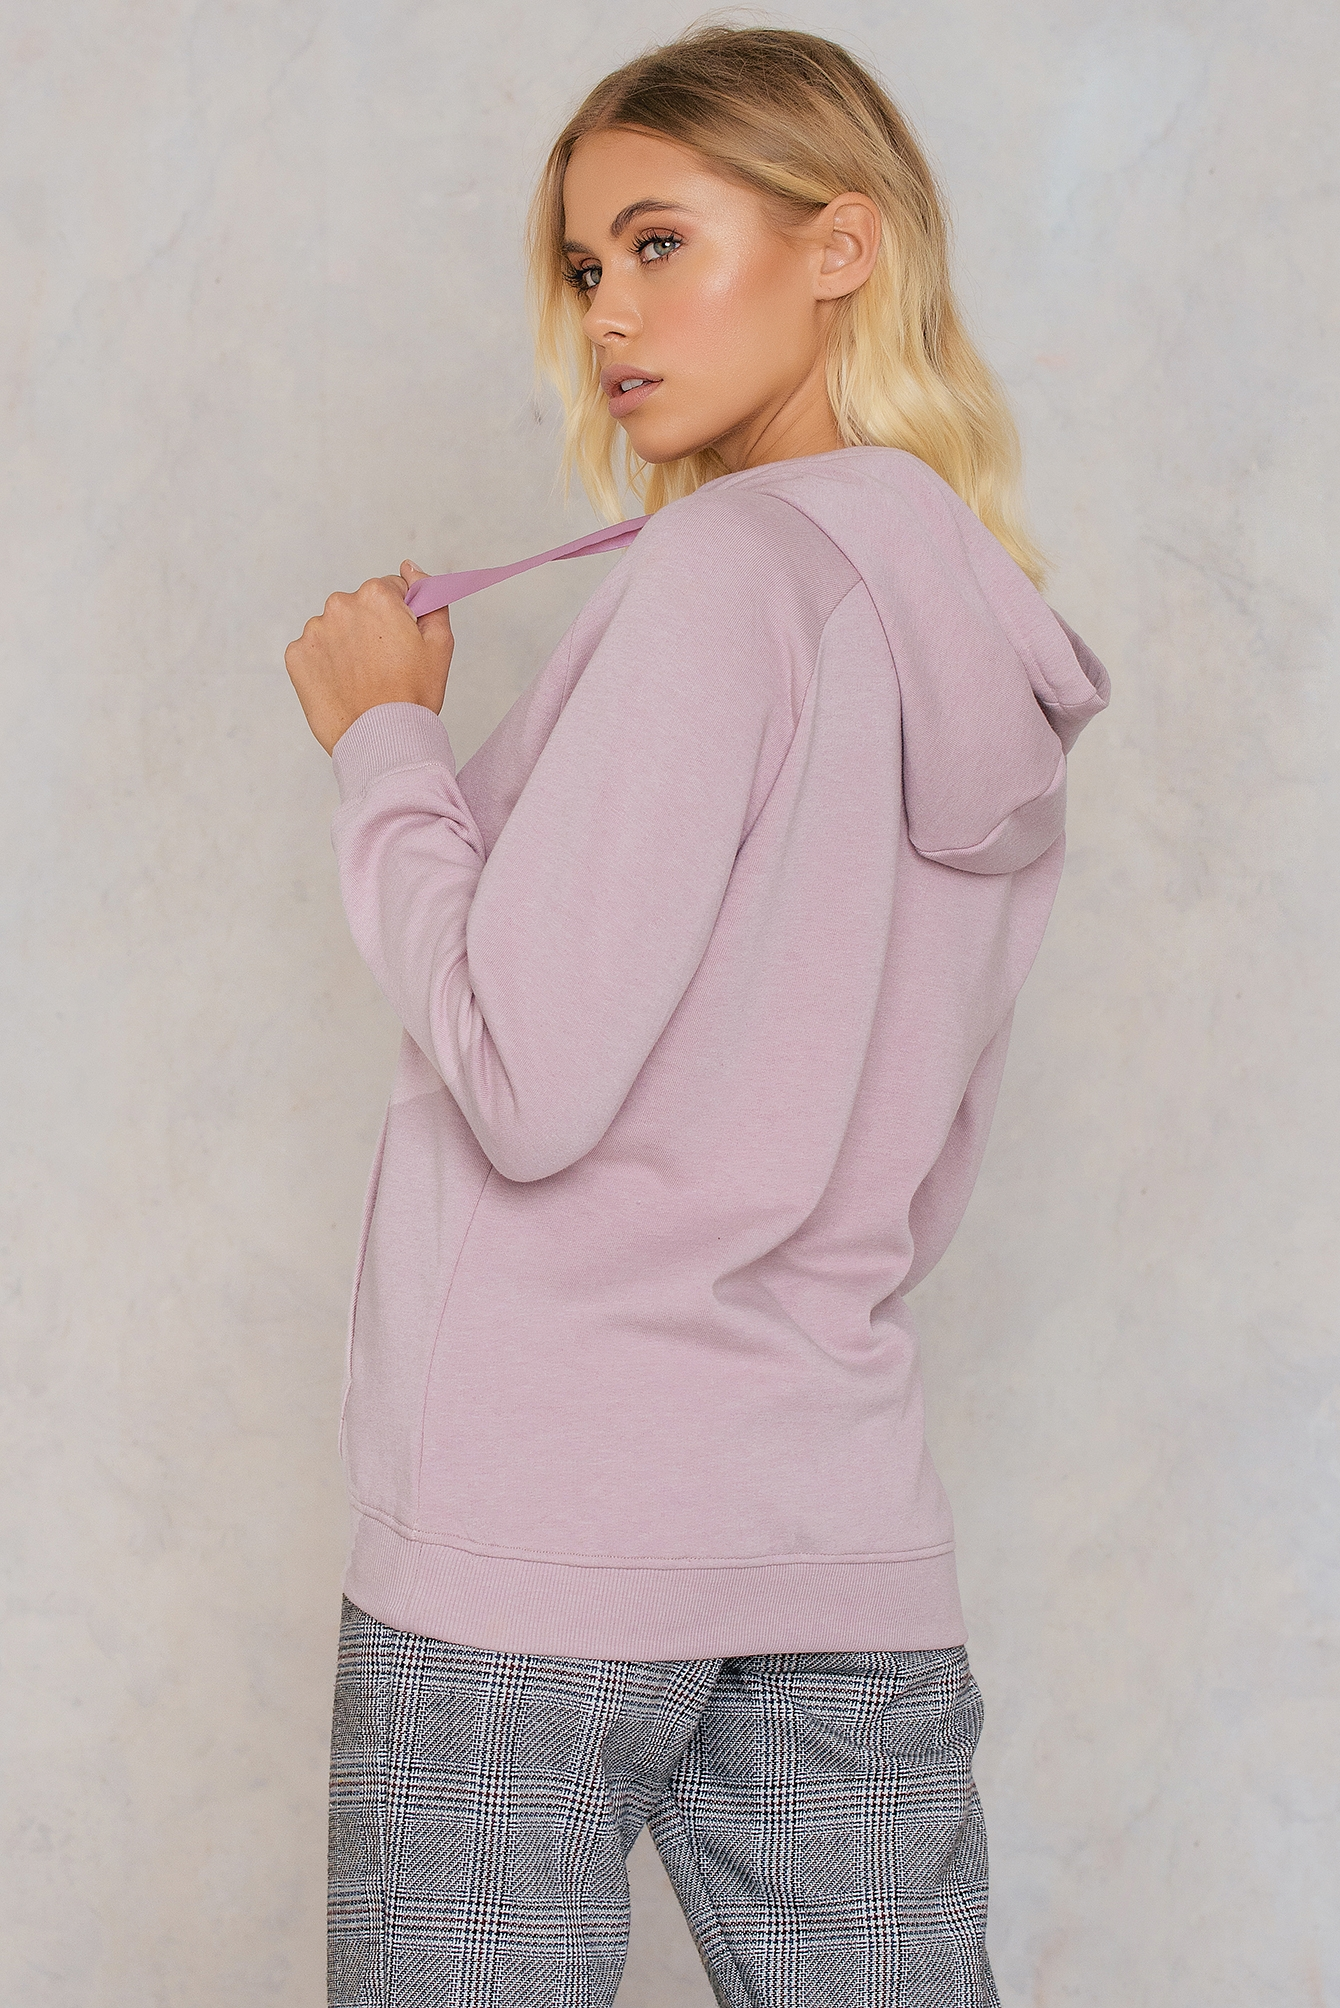 Misty Plum Hila Sweater 1